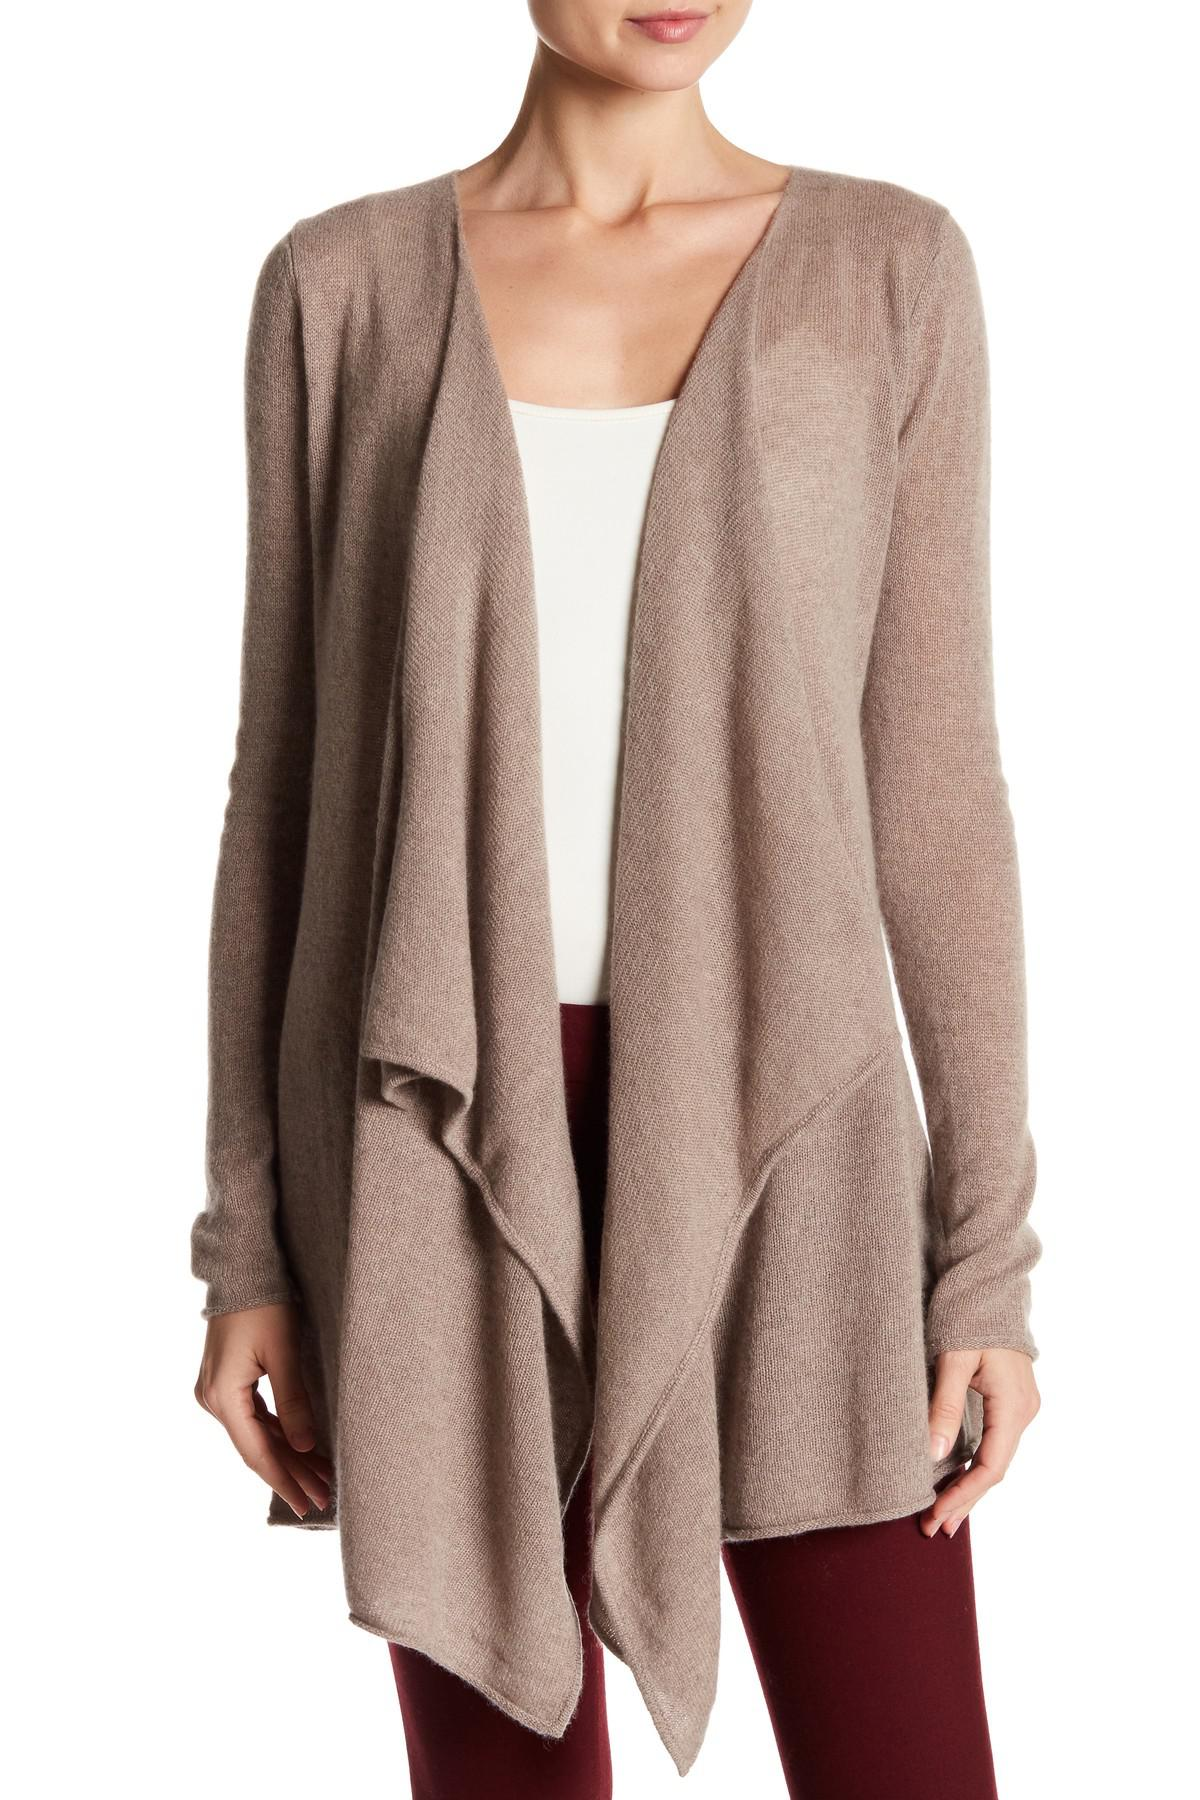 Philosophy cashmere Cashmere Waterfall Front Cardigan | Lyst